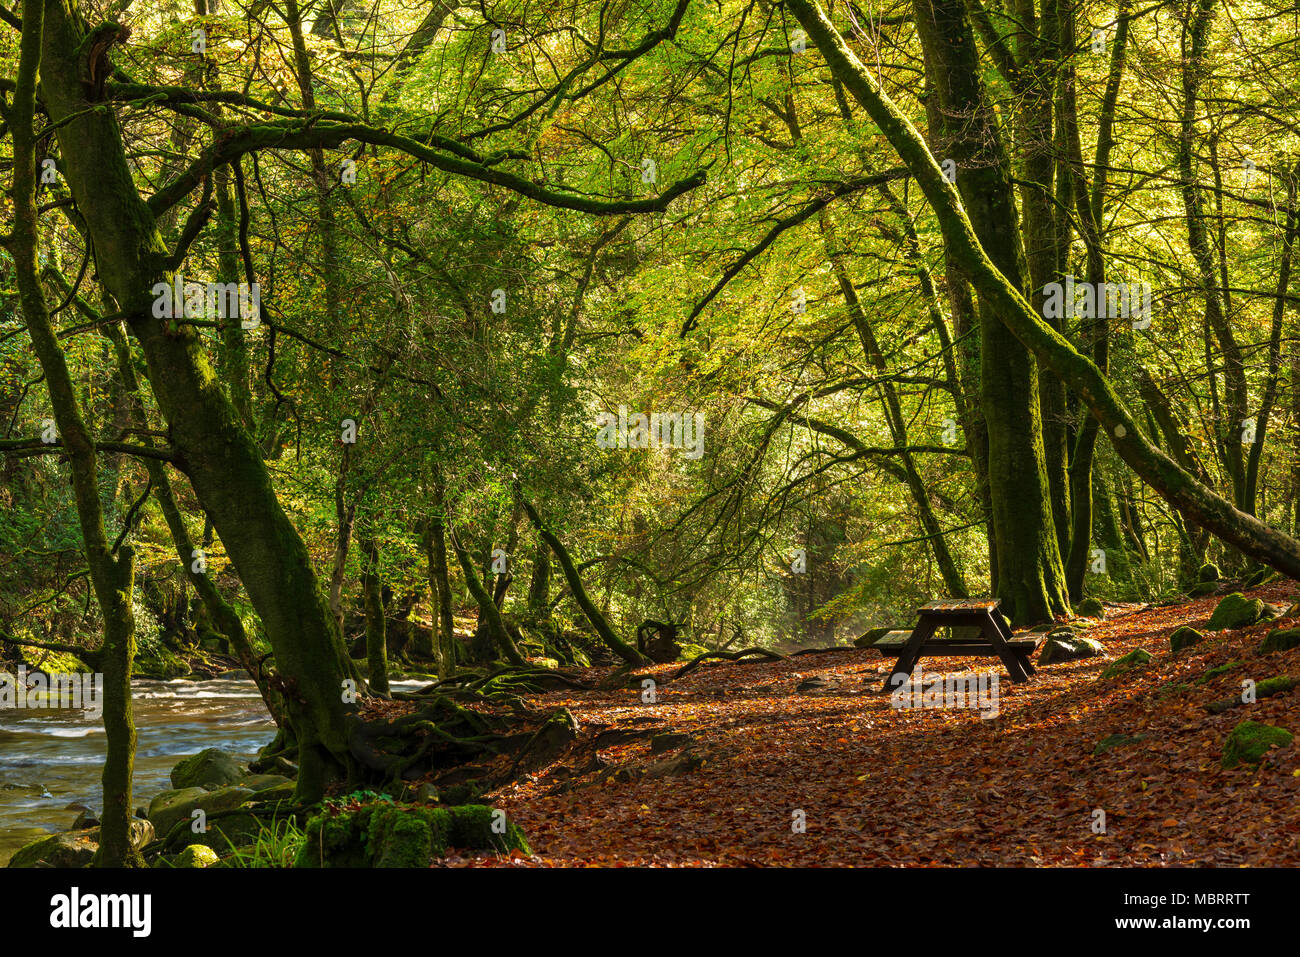 A picnic table on the bank of the River Erme in autumn woodland on the edge of the Dartmoor National Park, Devon, England. - Stock Image